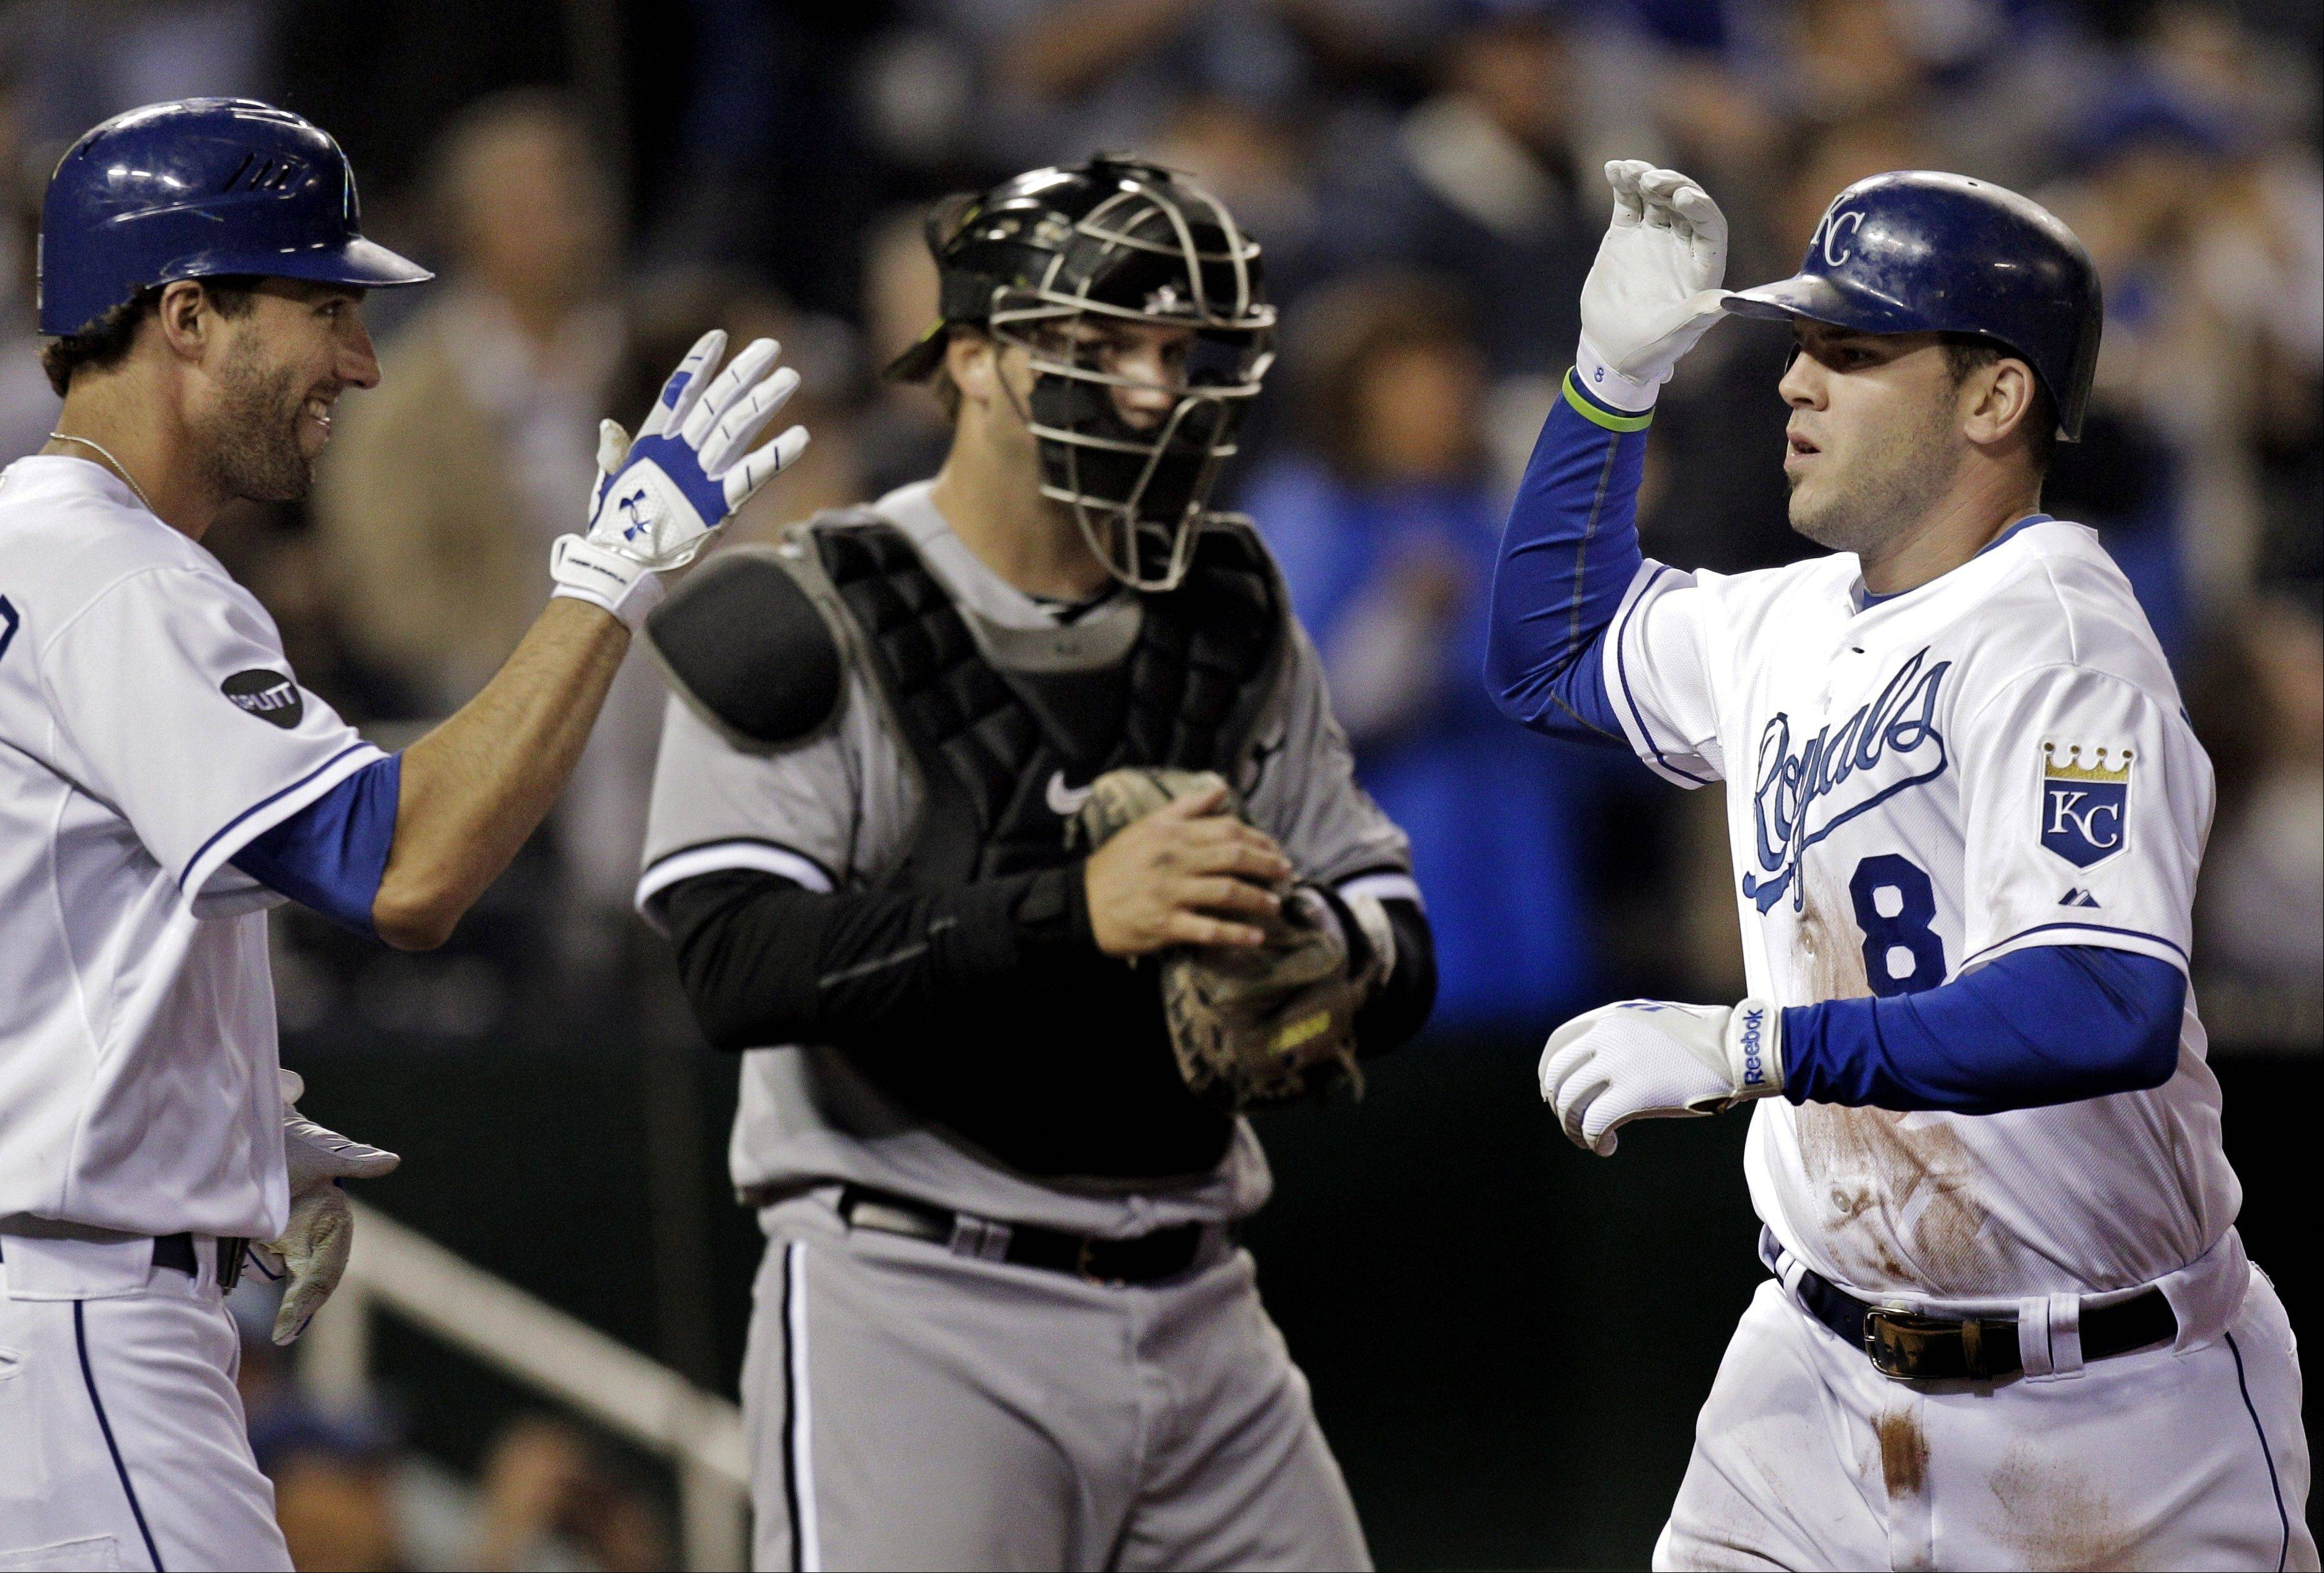 The Kansas City Royals topped the White Sox 7-6 Friday night.